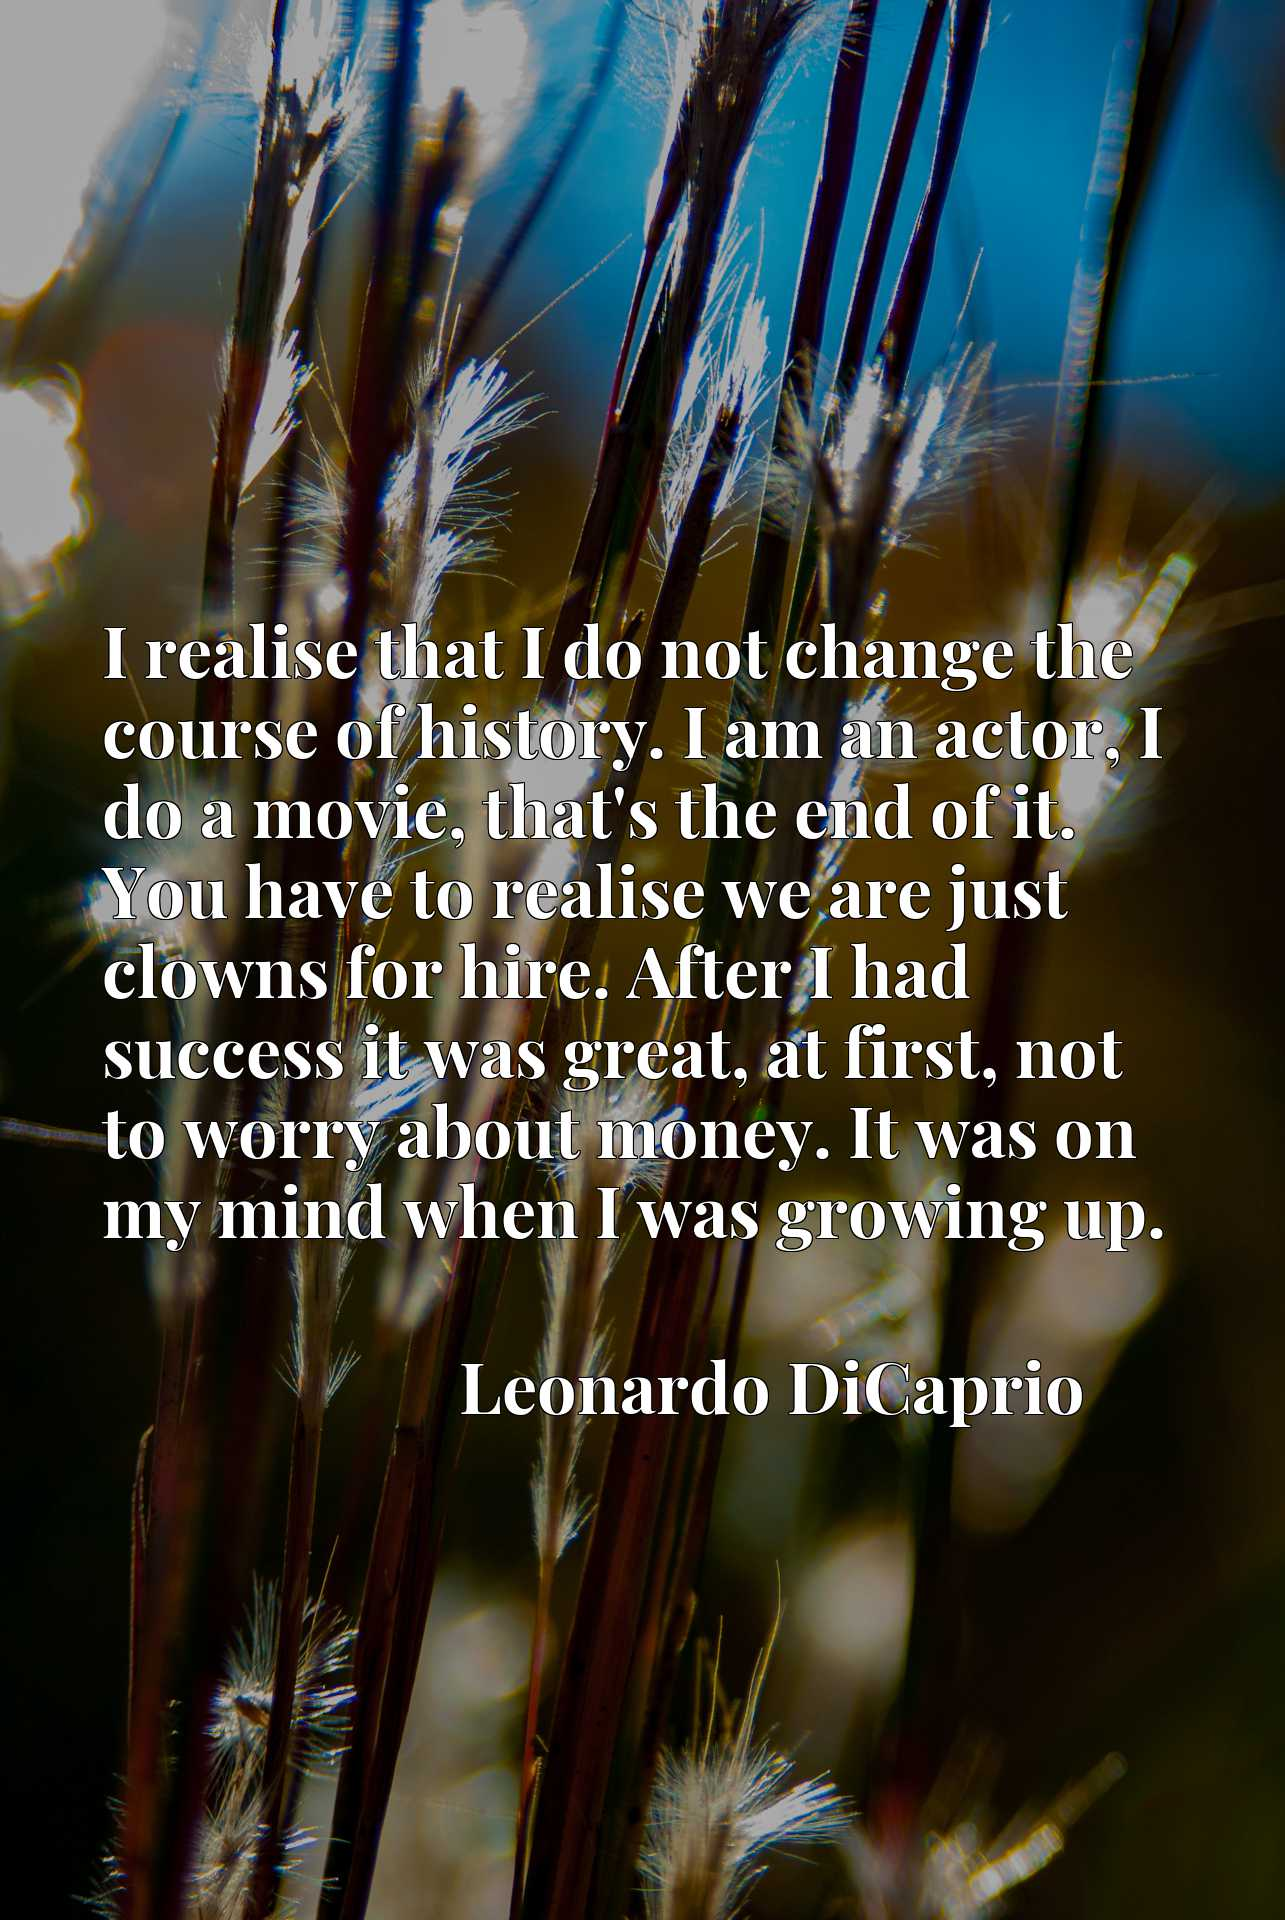 I realise that I do not change the course of history. I am an actor, I do a movie, that's the end of it. You have to realise we are just clowns for hire. After I had success it was great, at first, not to worry about money. It was on my mind when I was growing up.